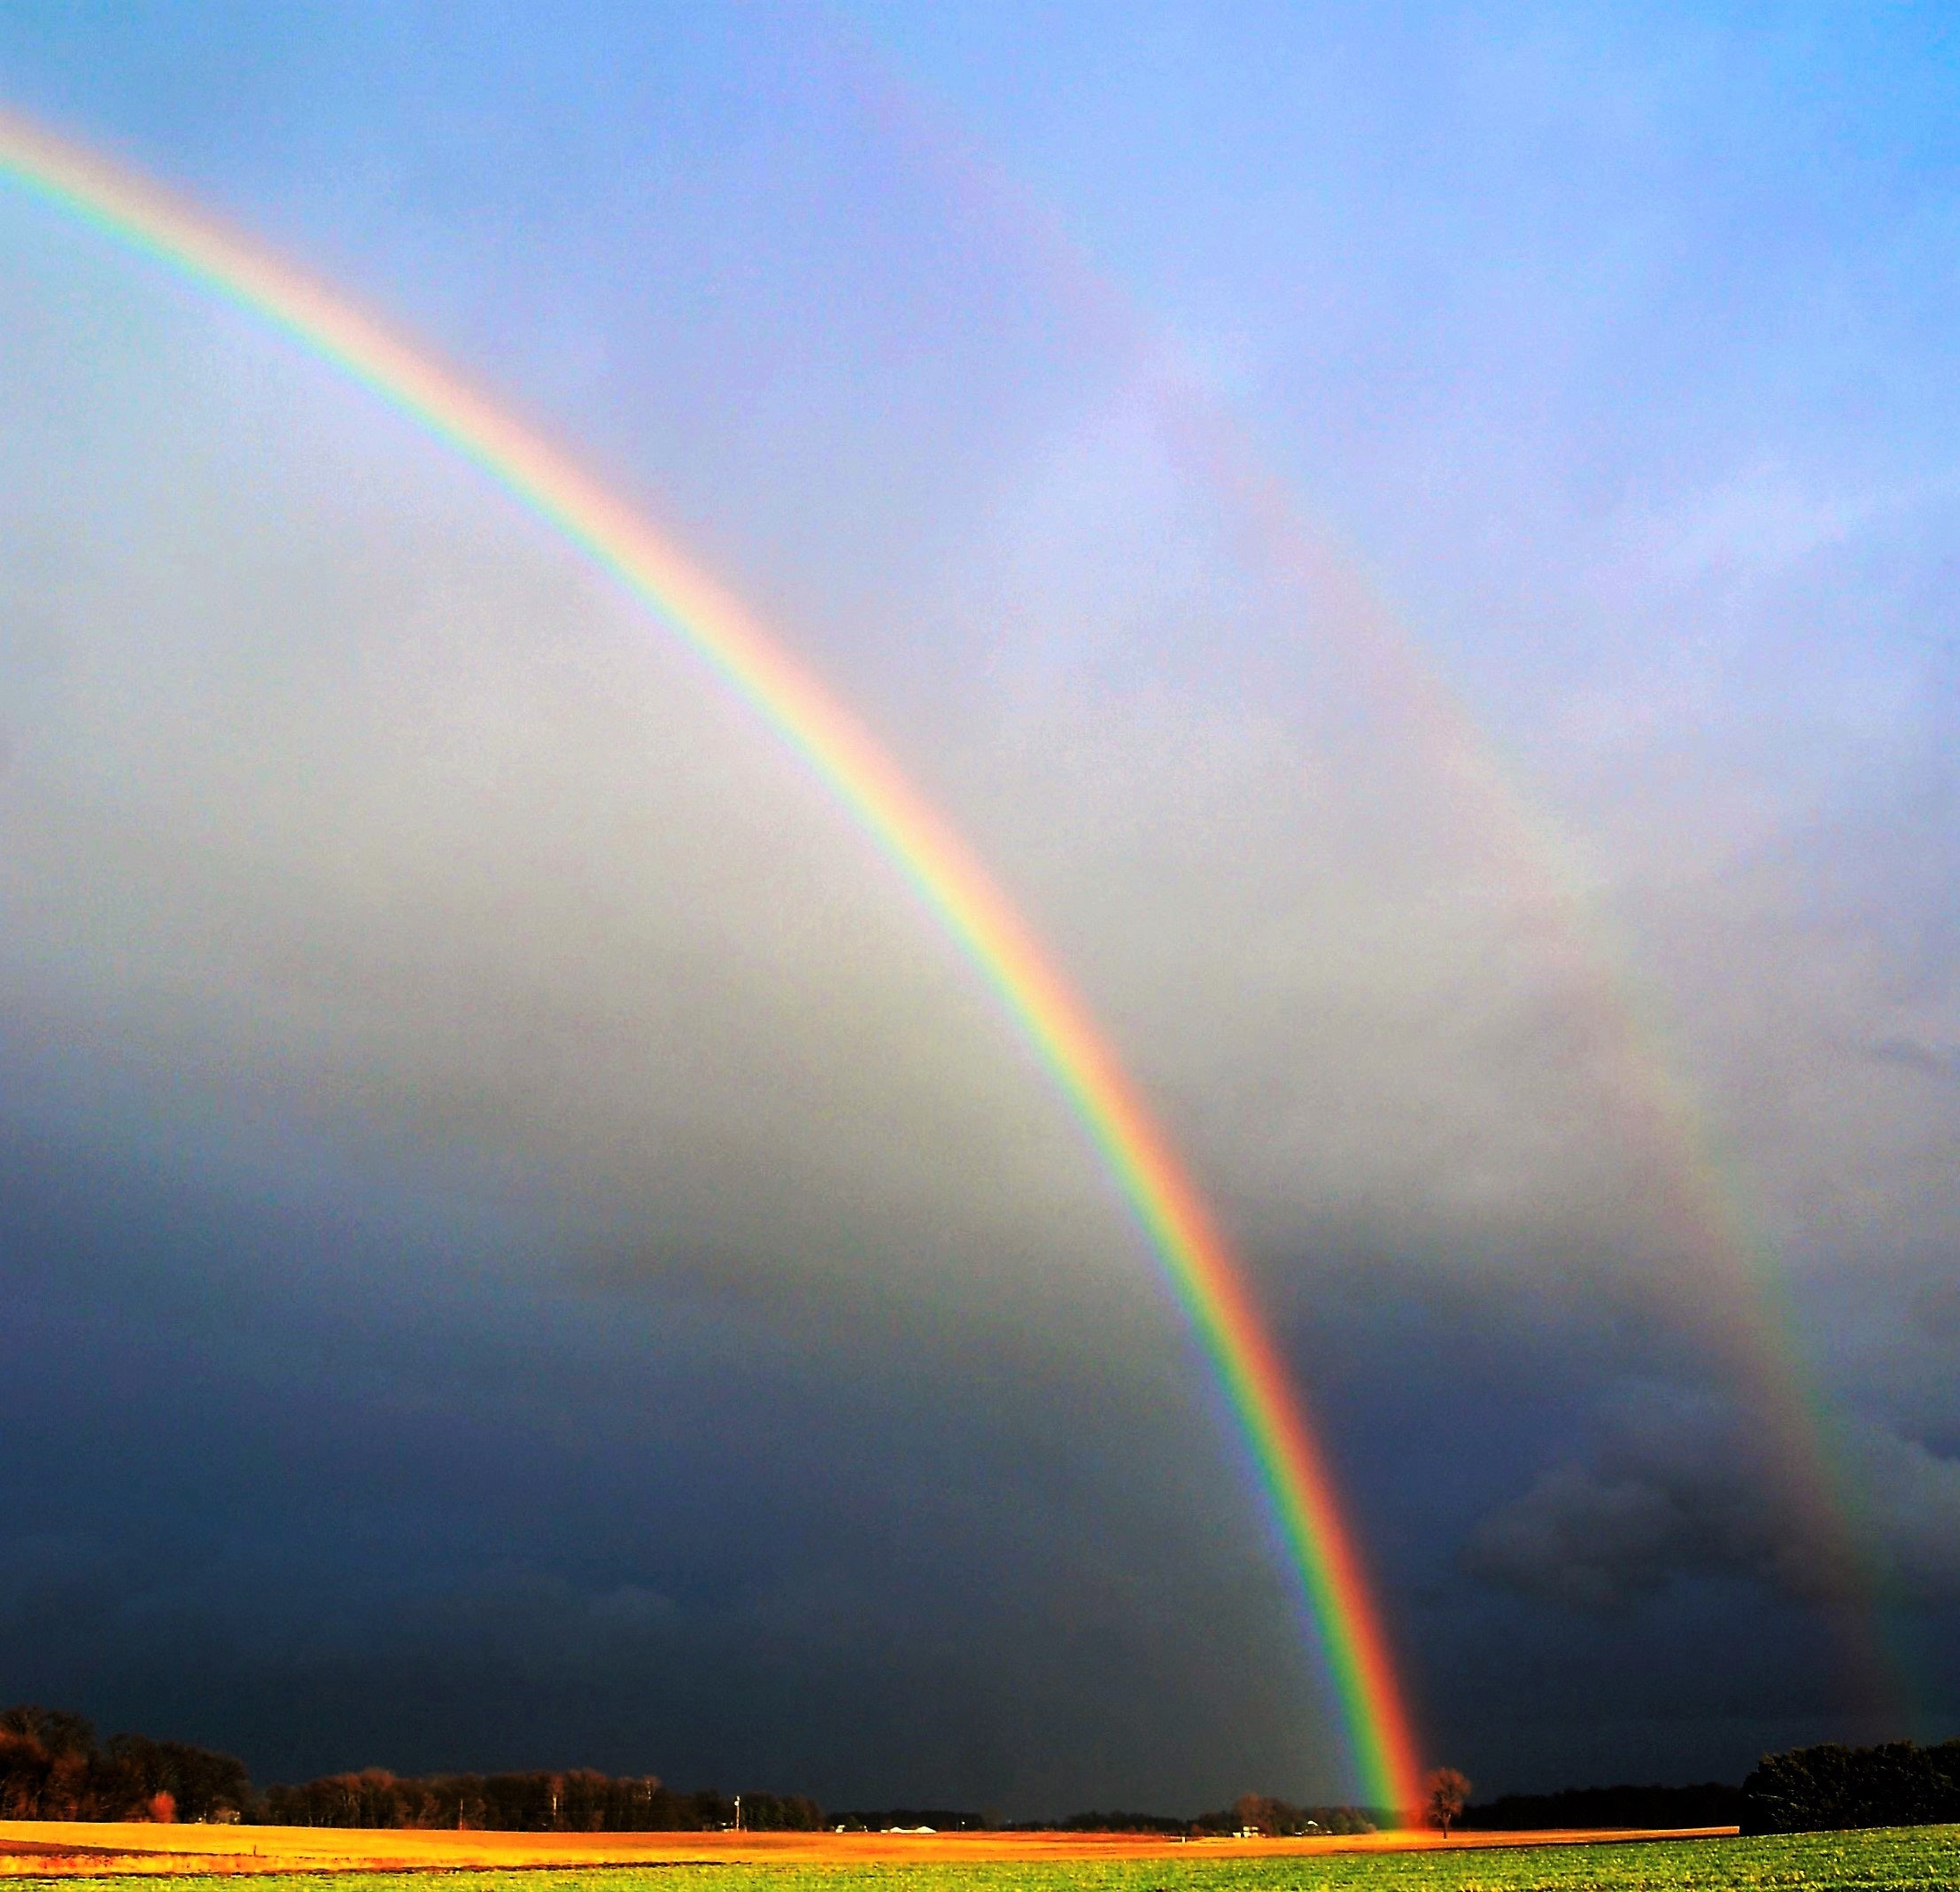 Photography Of Rainbow During Cloudy Sky 183 Free Stock Photo